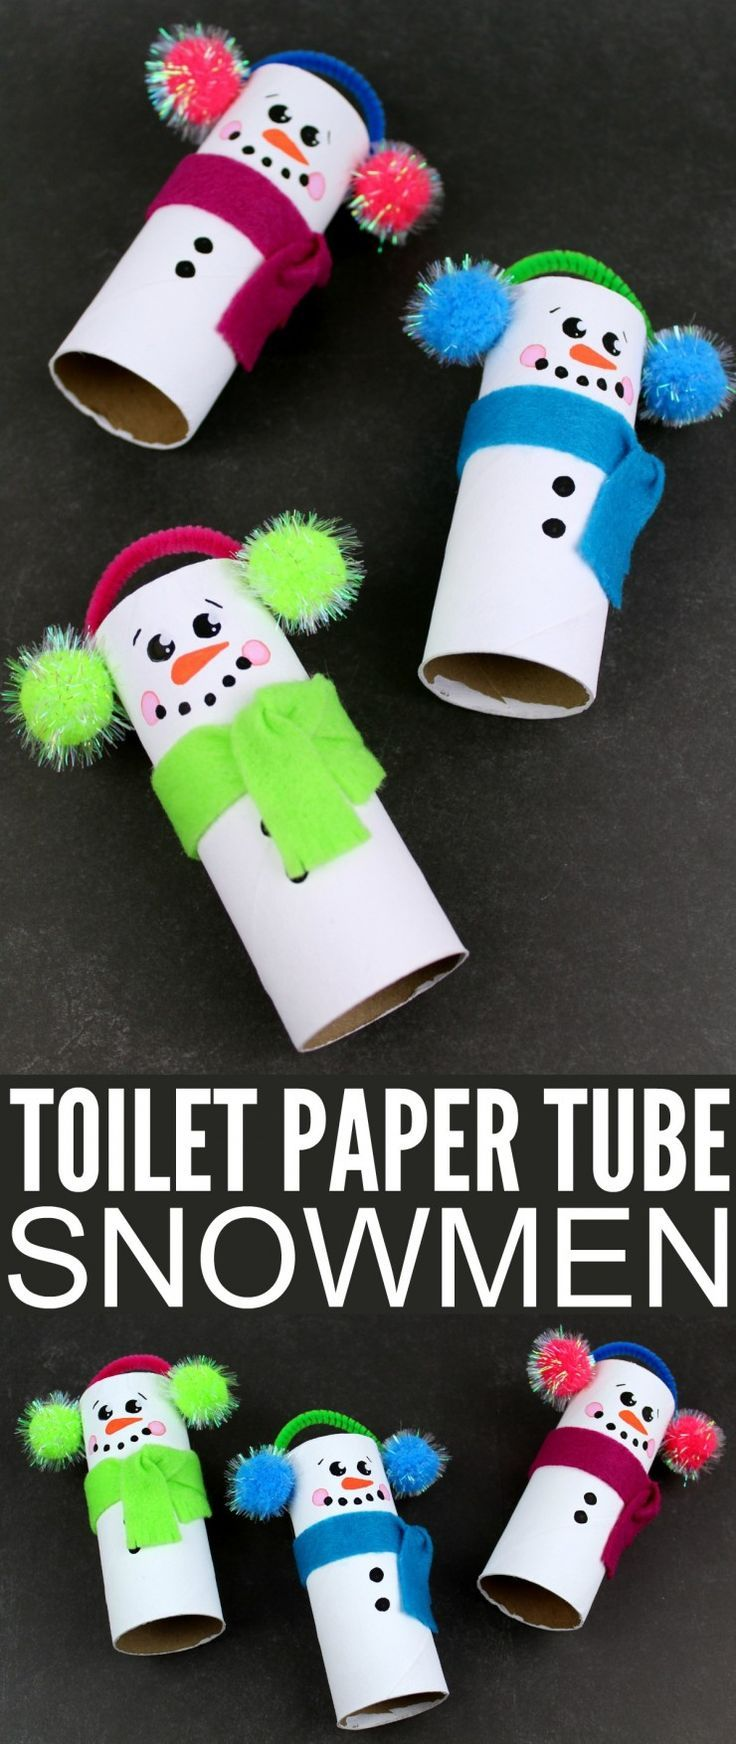 Recycled Toilet Paper Tube Snowmen Winter crafts for